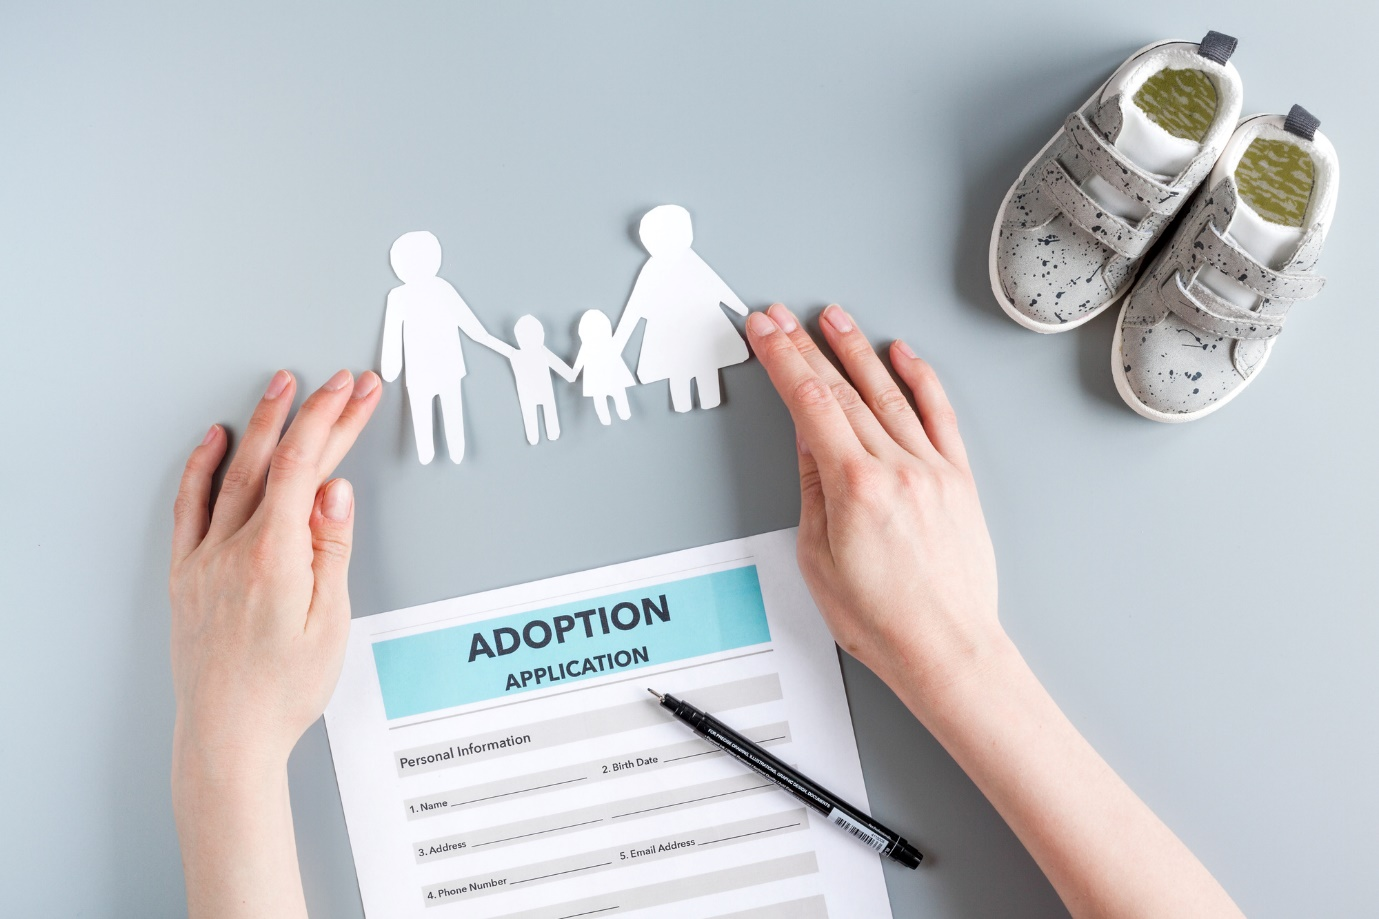 What Are the Requirements for Adopting a Child?